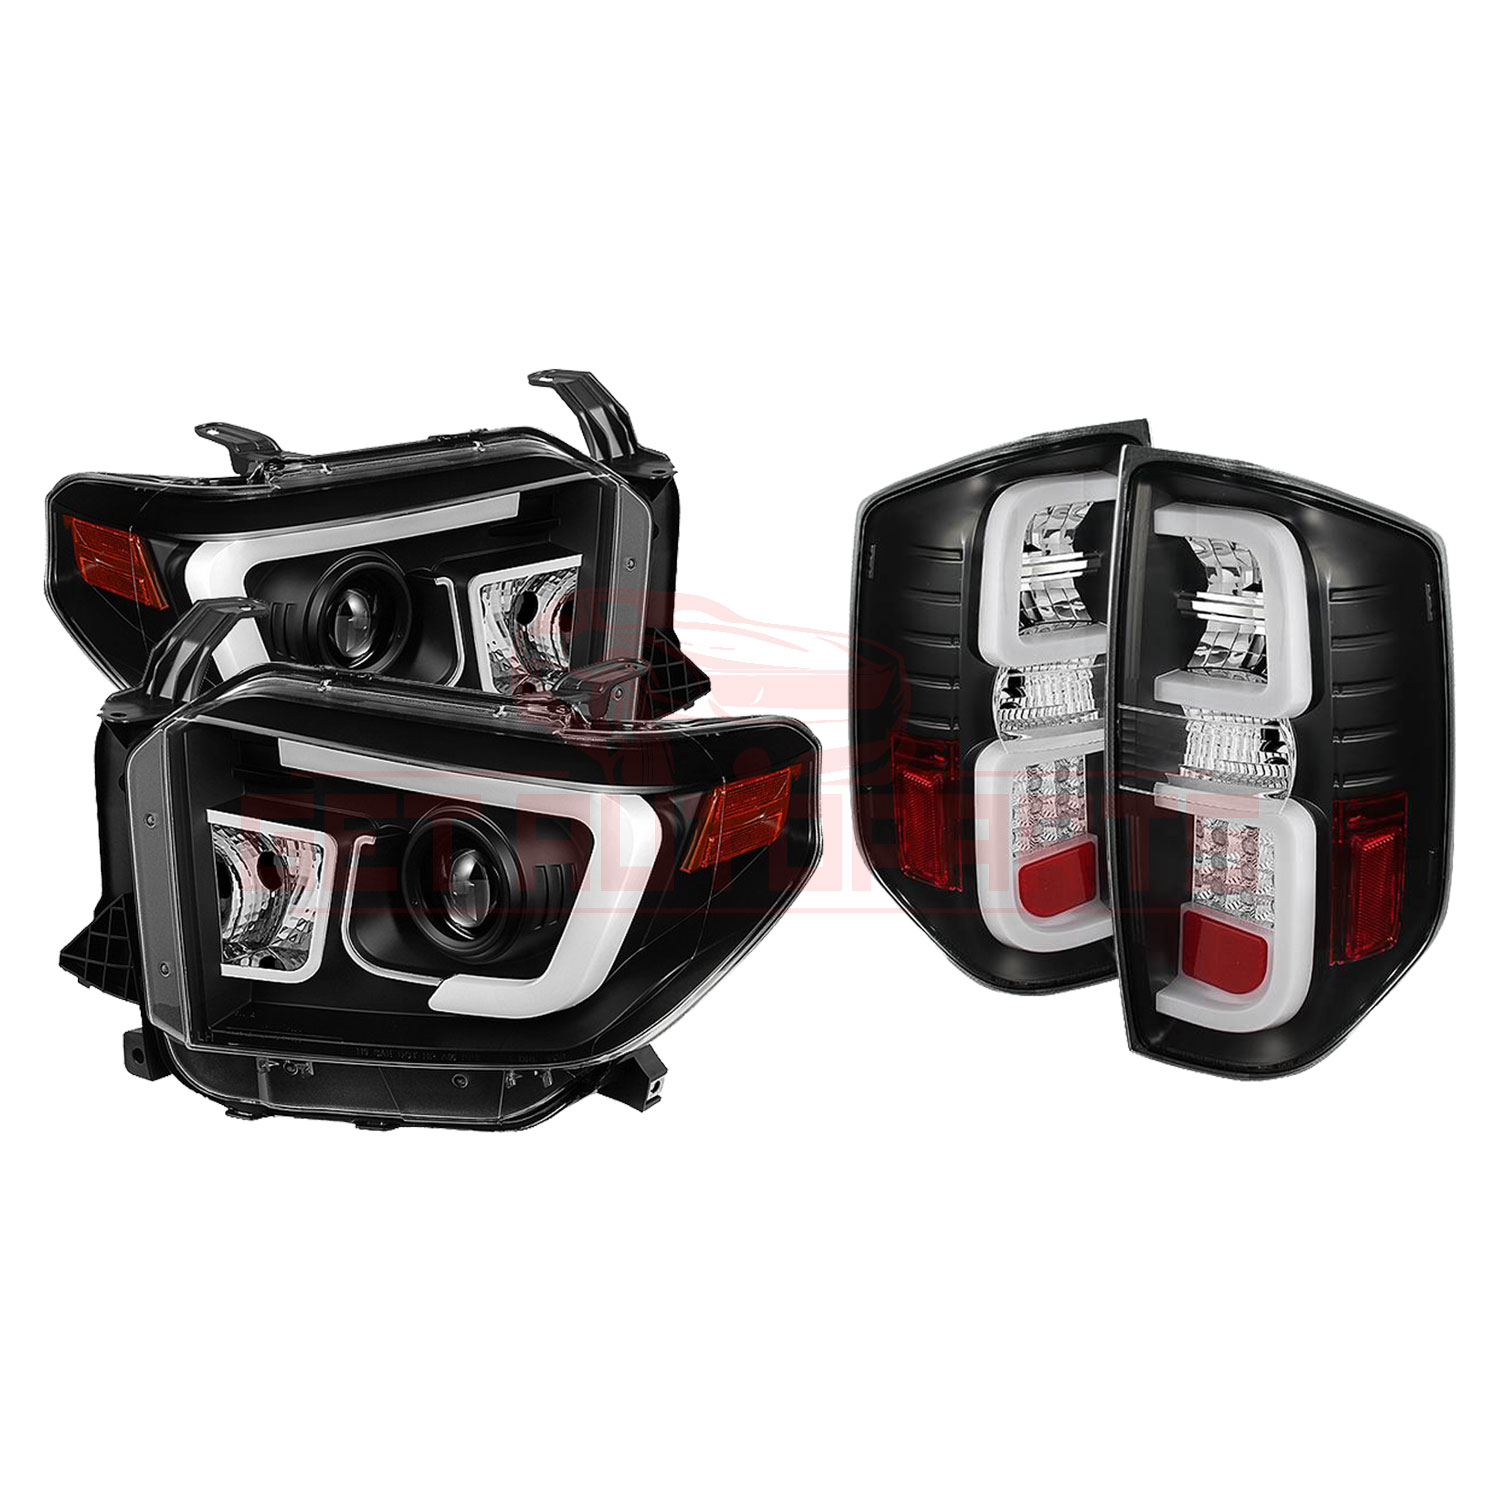 Spyder DRL Projector Headlights & LED Tail Lights Black Toyota Tundra 2014-2016 part in Headlight & Tail Light Covers category